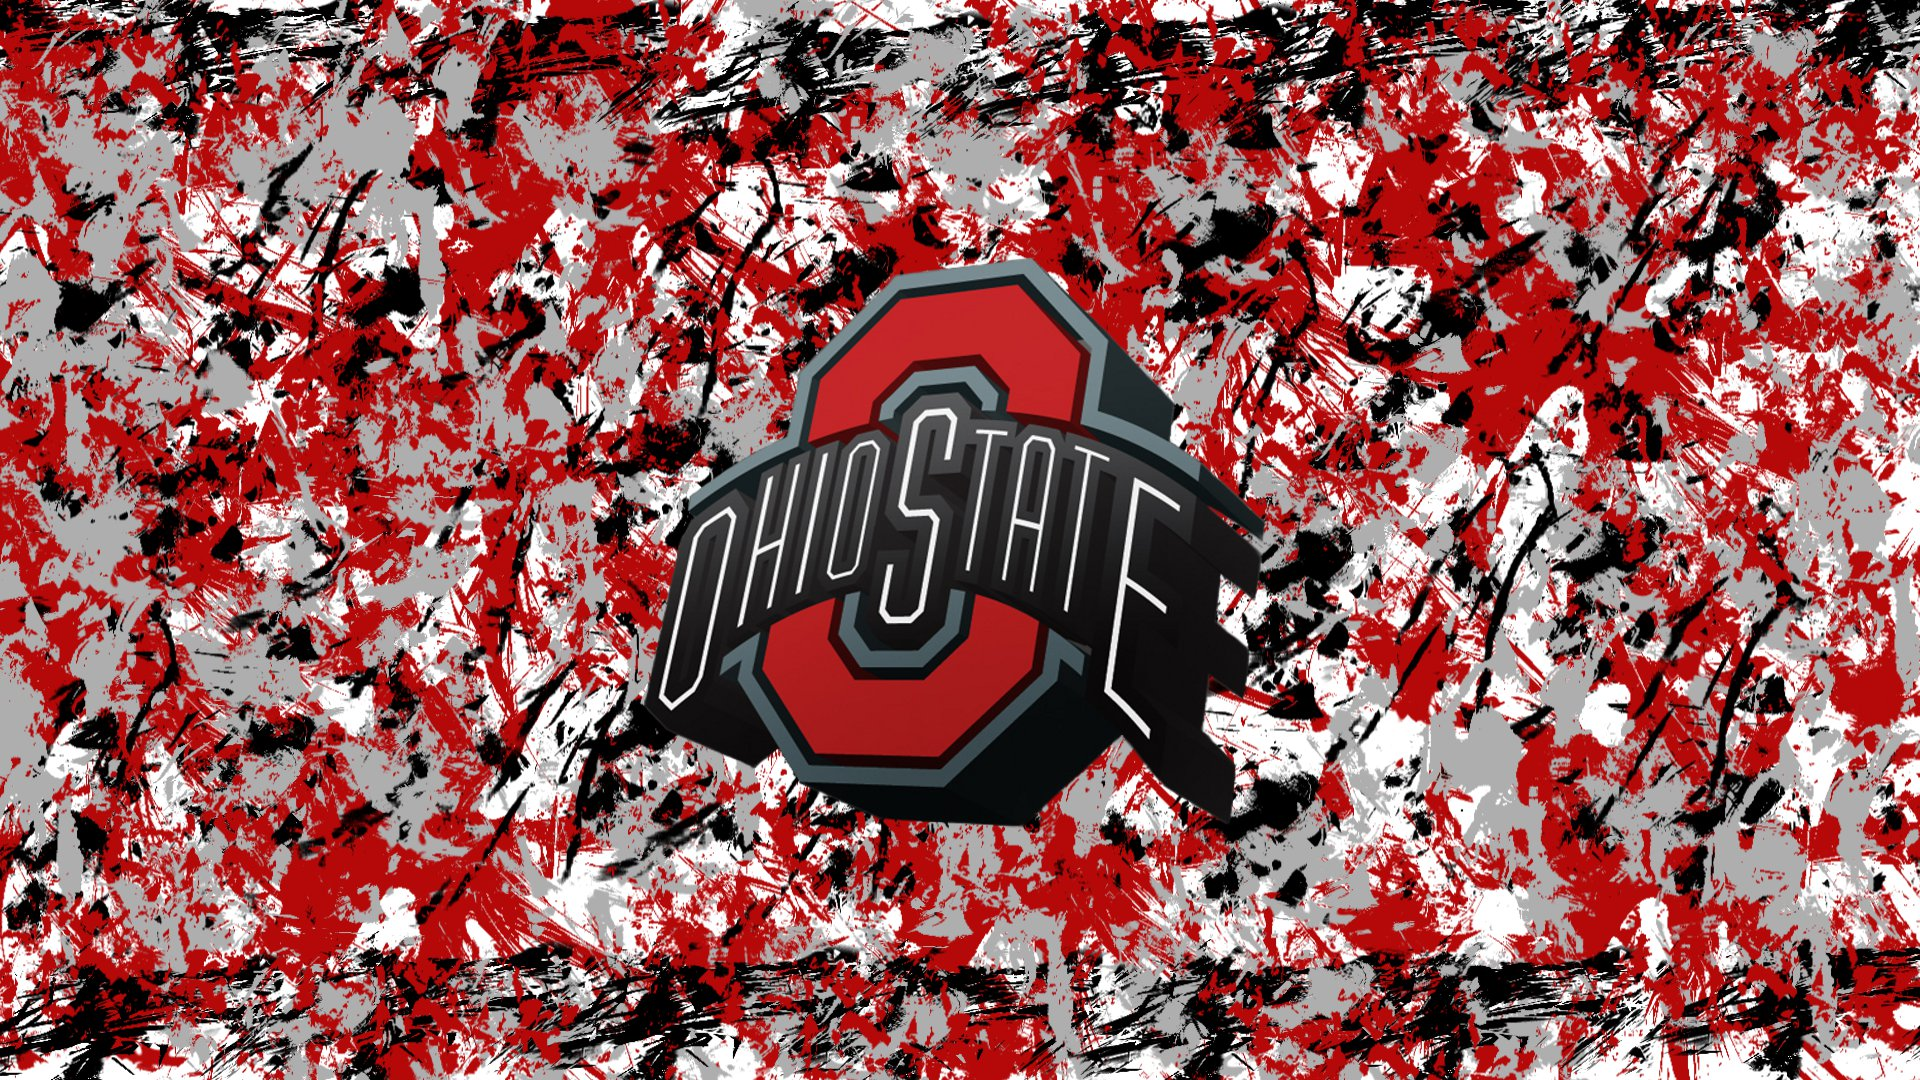 Football Wallpaper Cool Cool Ohio State Football: [43+] Ohio State Football IPhone Wallpaper On WallpaperSafari